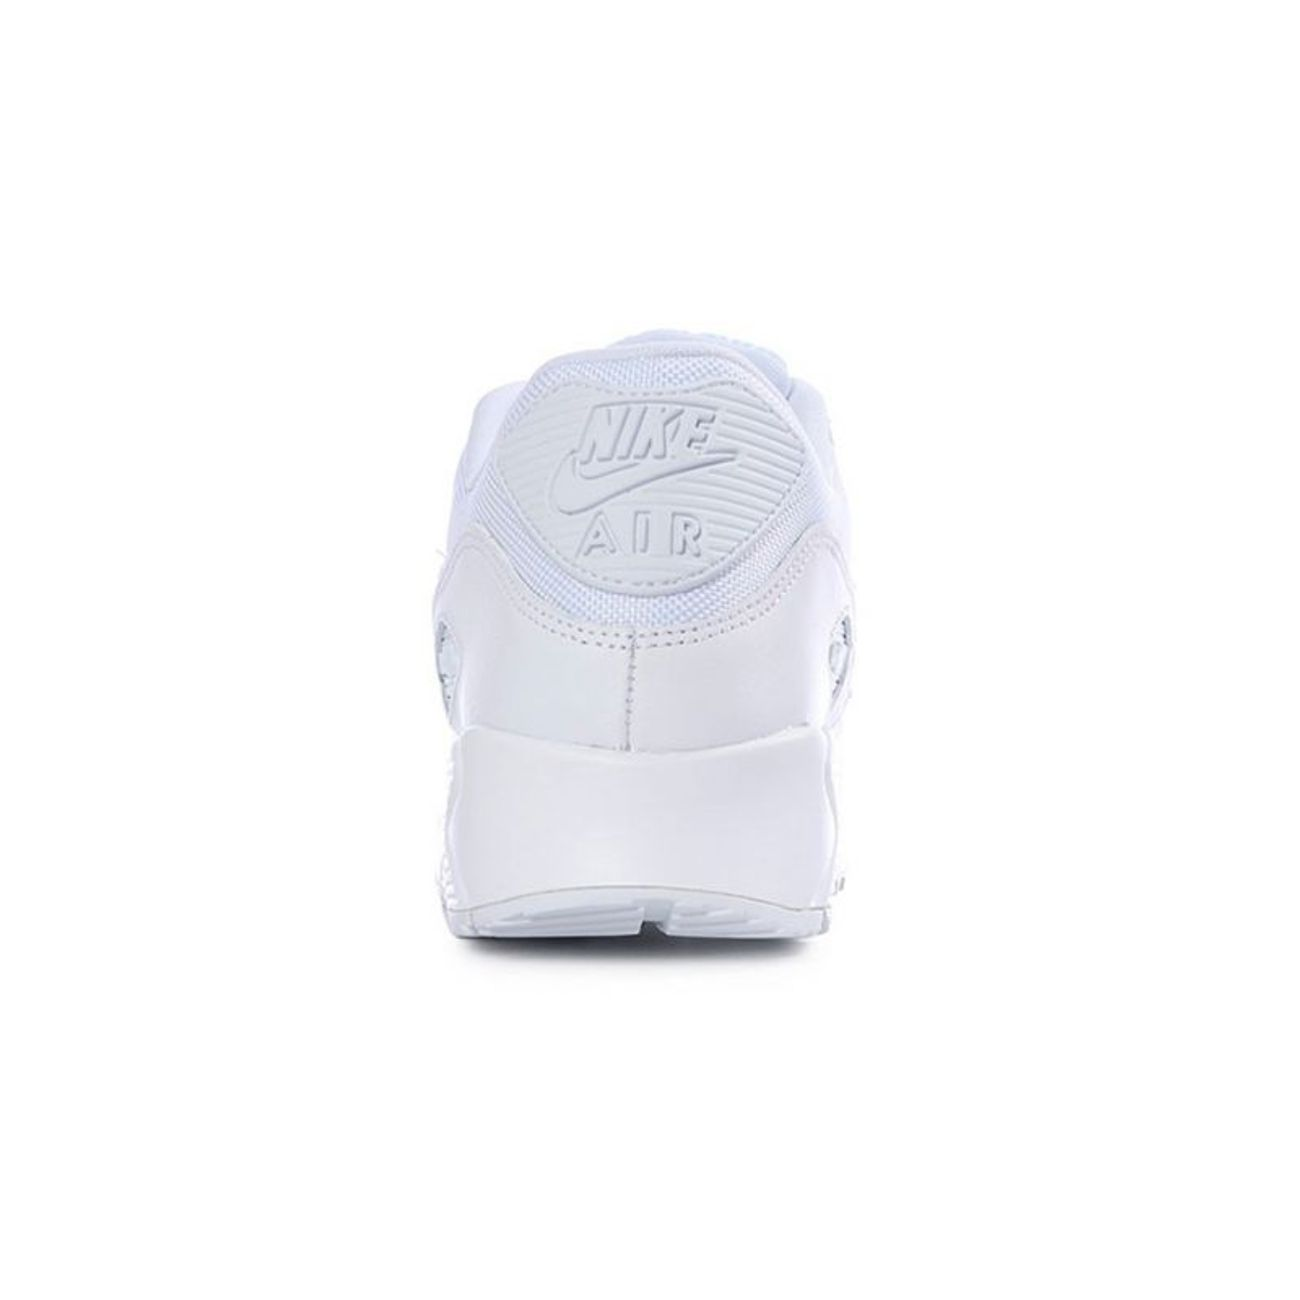 Max Blanco Adulte Ni537384 111 Padel Essential 90 Nike Air 0nOP8Xwk